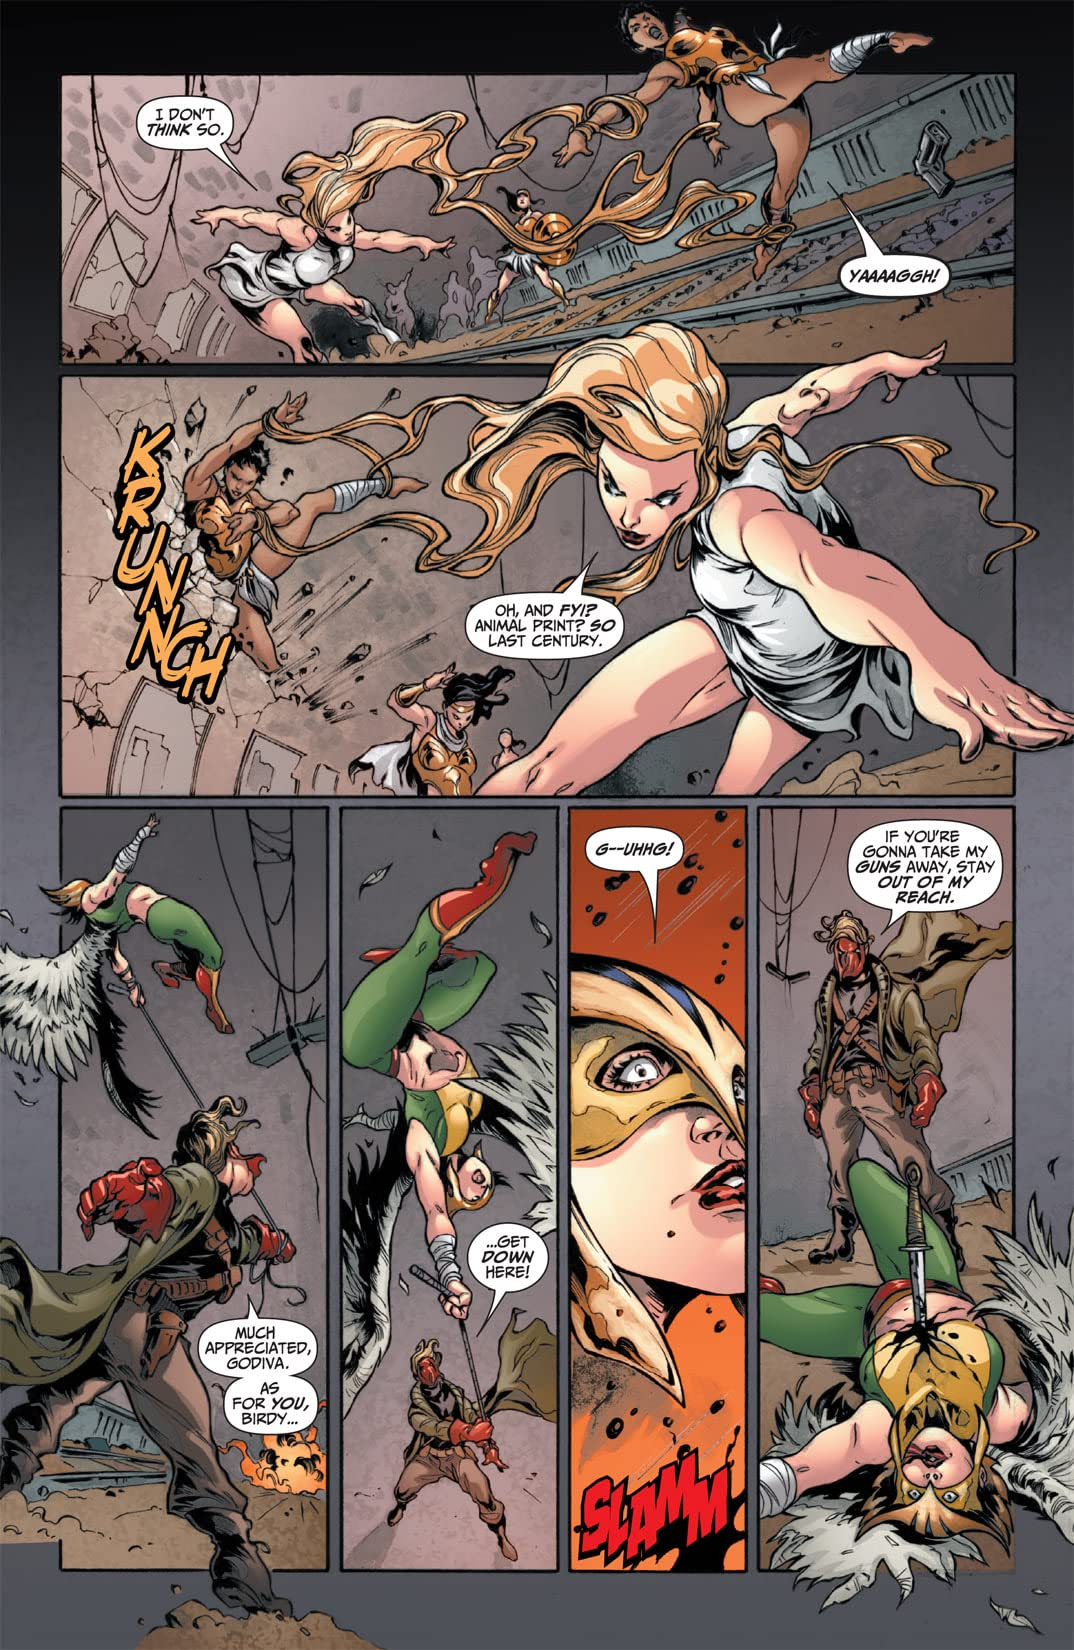 Flashpoint: Lois Lane and the Resistance #2 (of 3)